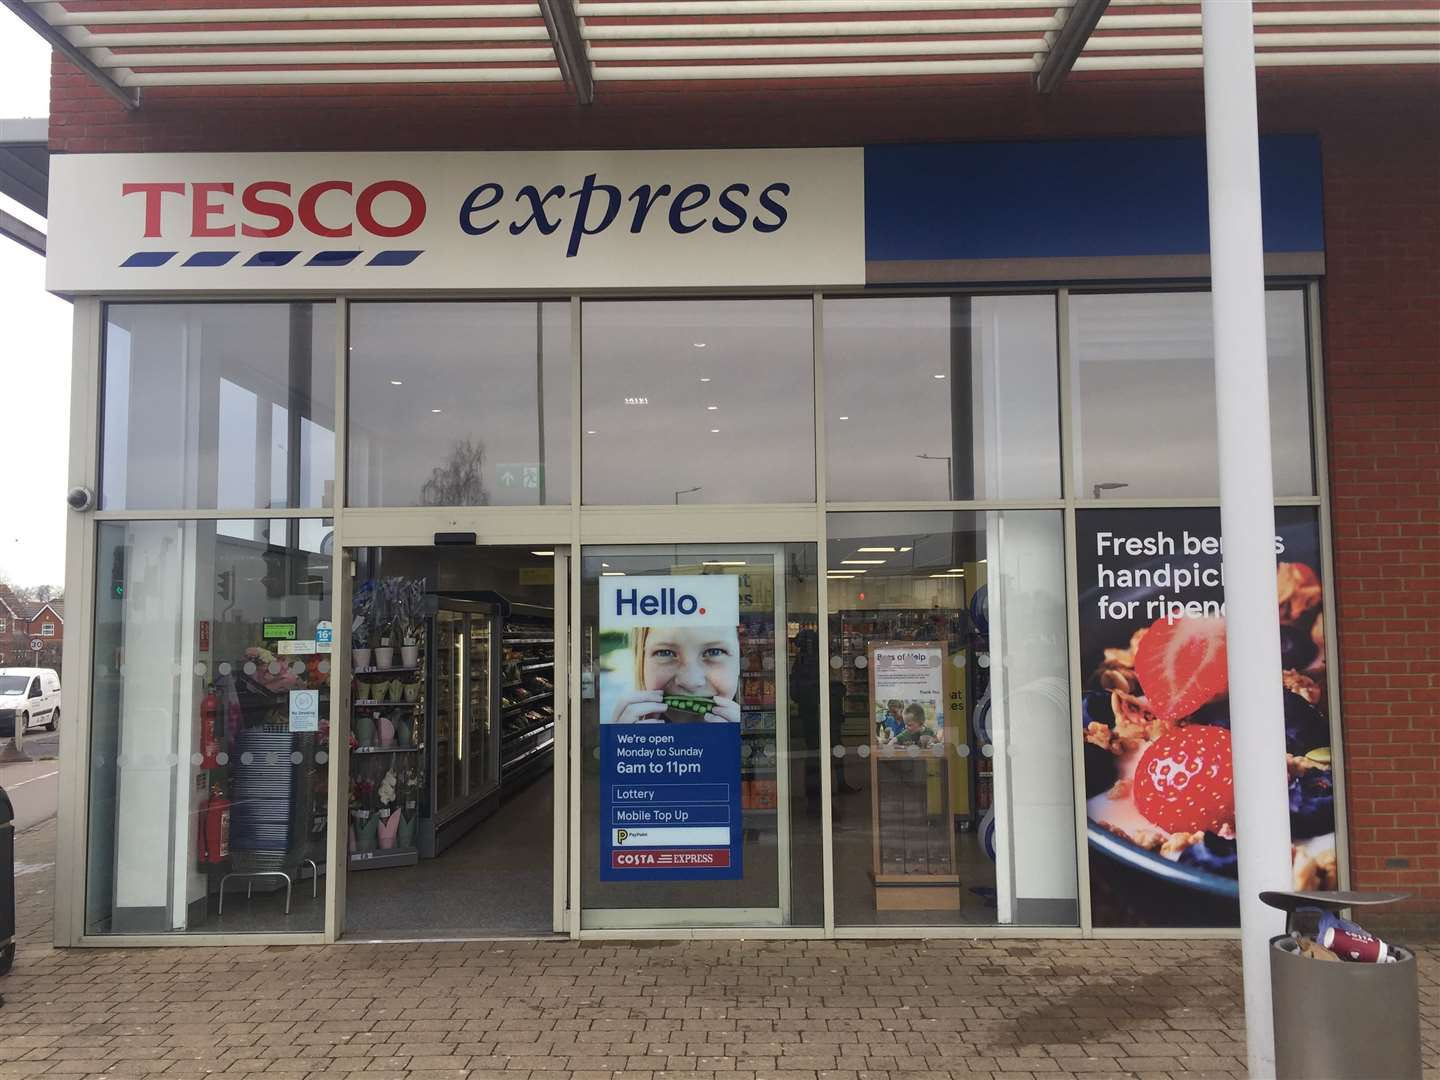 Tesco have explained that there is no need to panic as they have plenty of food